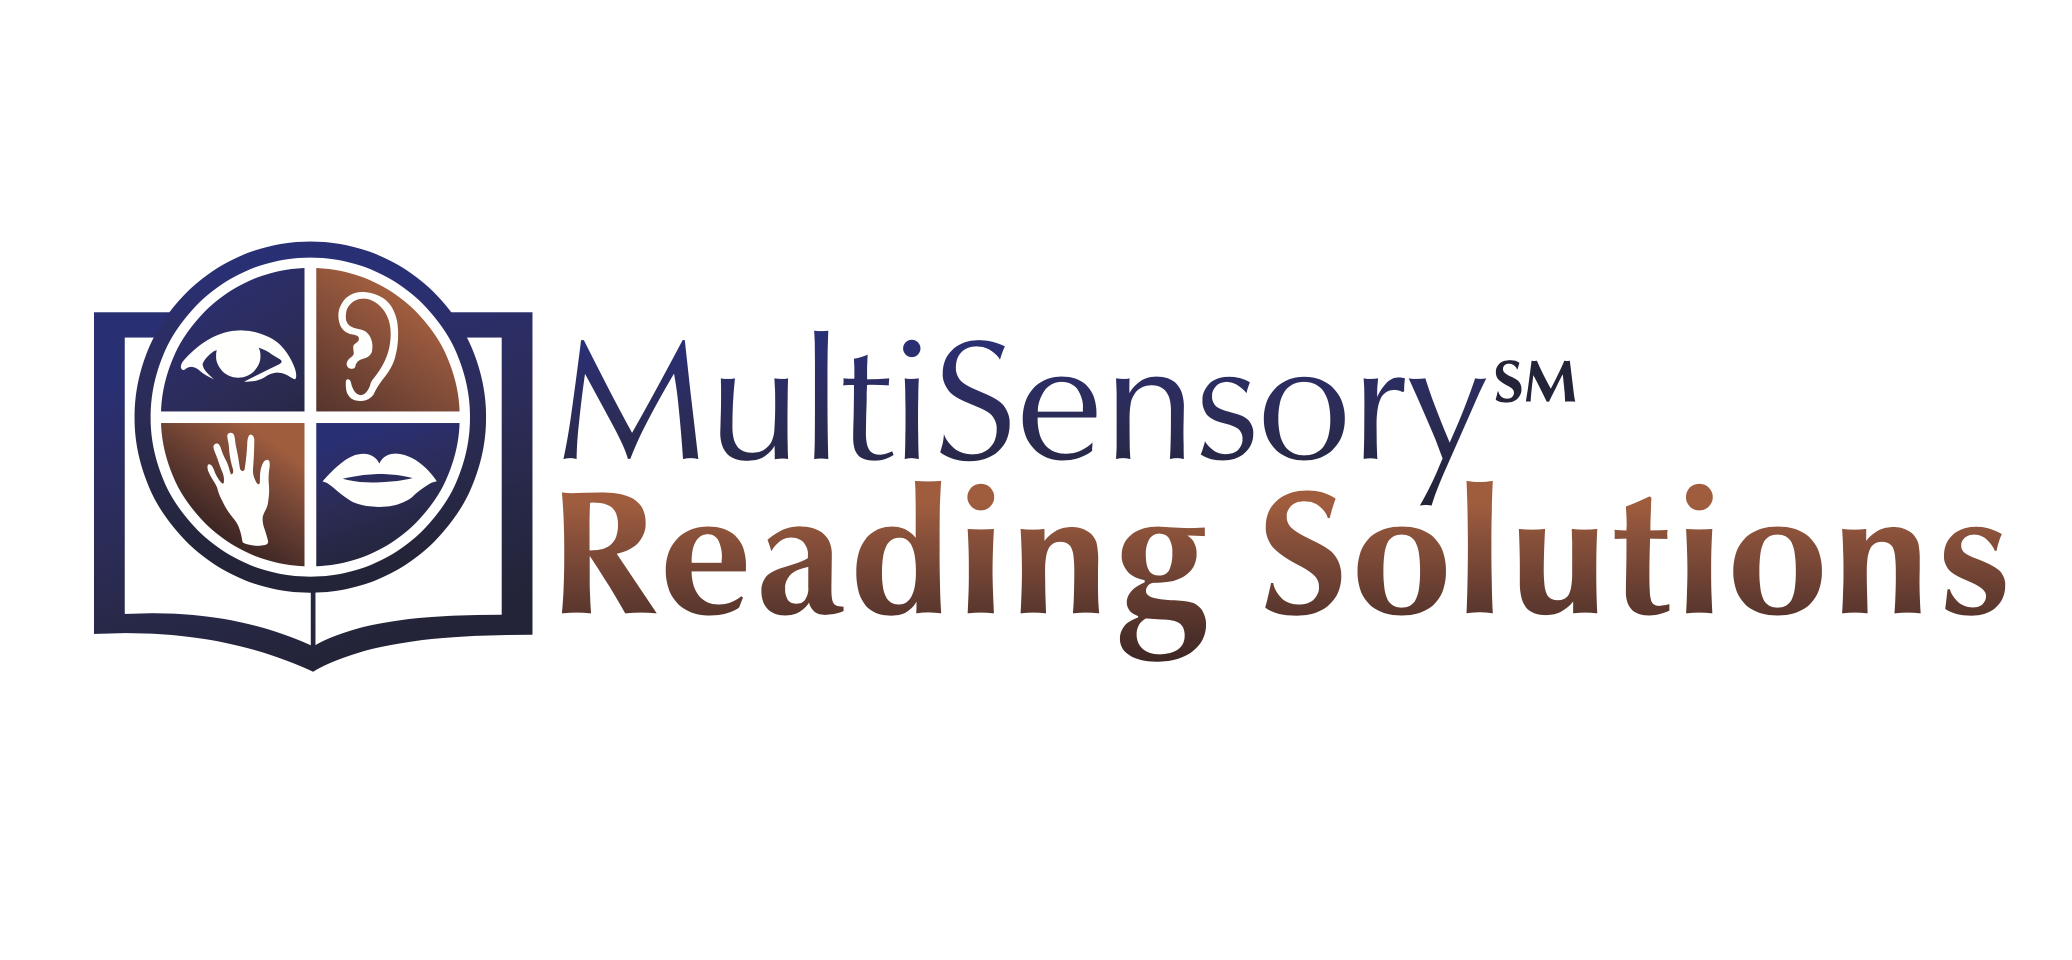 Multisensory_Reading_Solutions.png